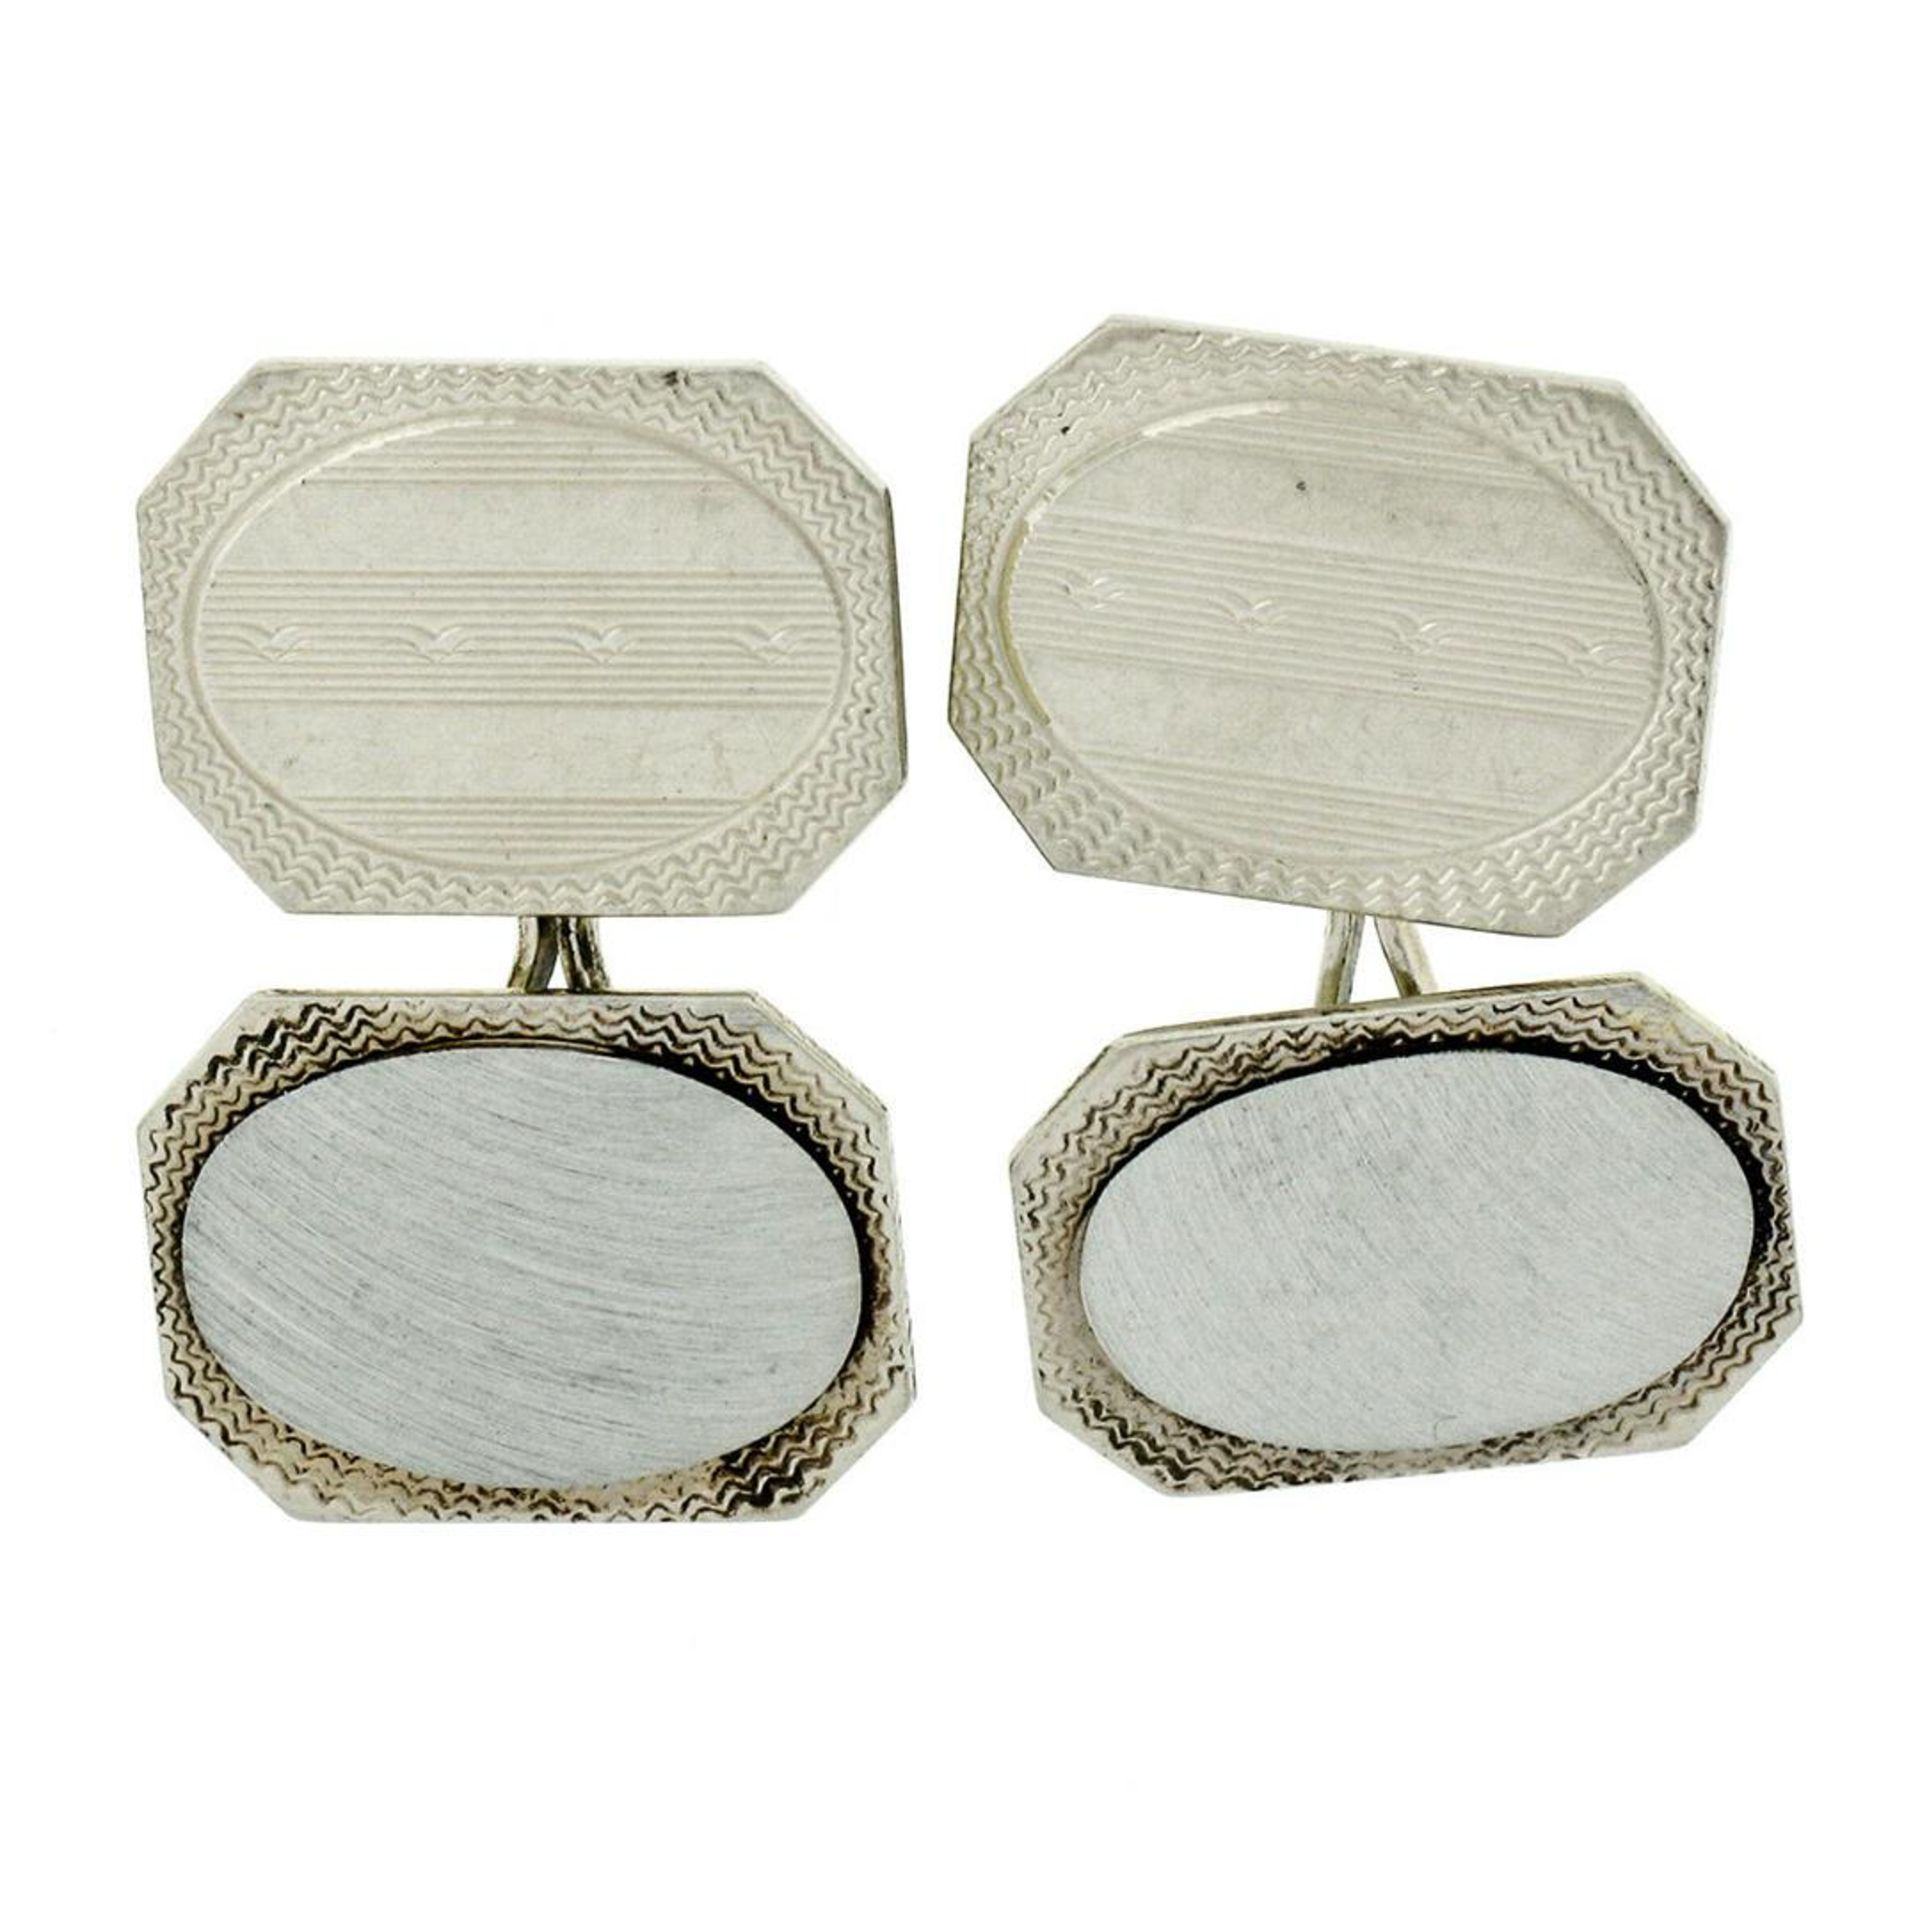 Antique Art Deco 14kt White Gold Etched Dual Panel Cuff Links